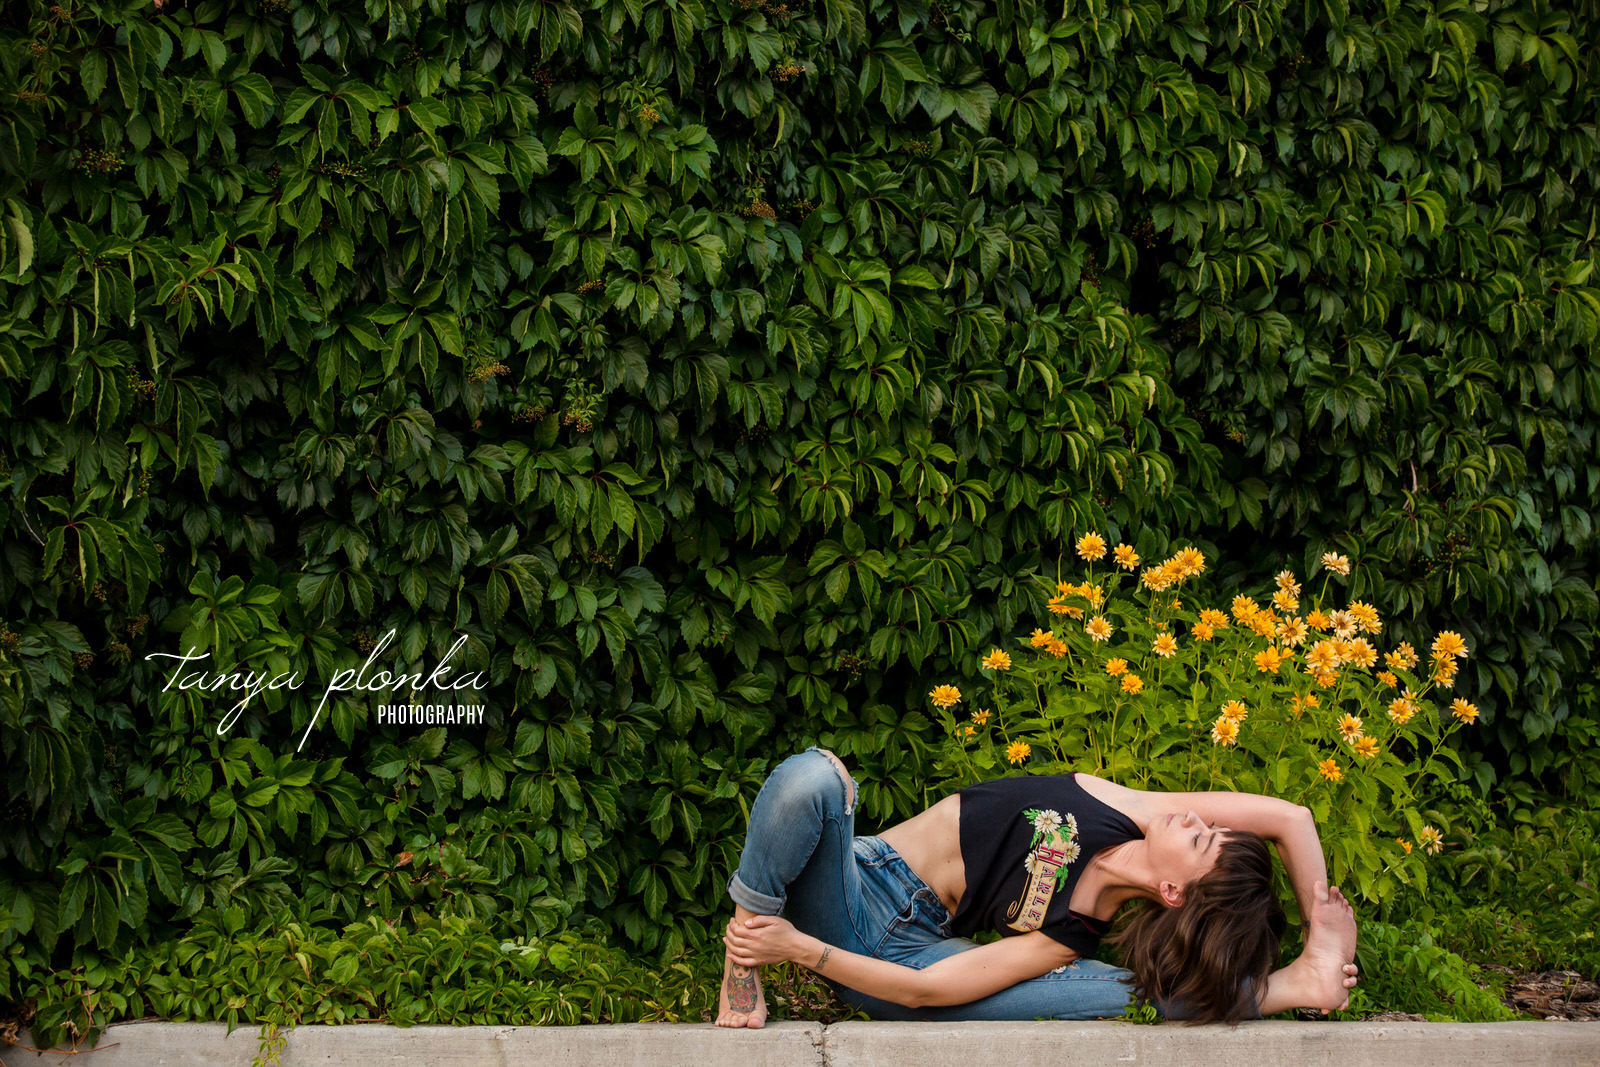 woman doing yoga pose in urban setting with yellow flowers behind her